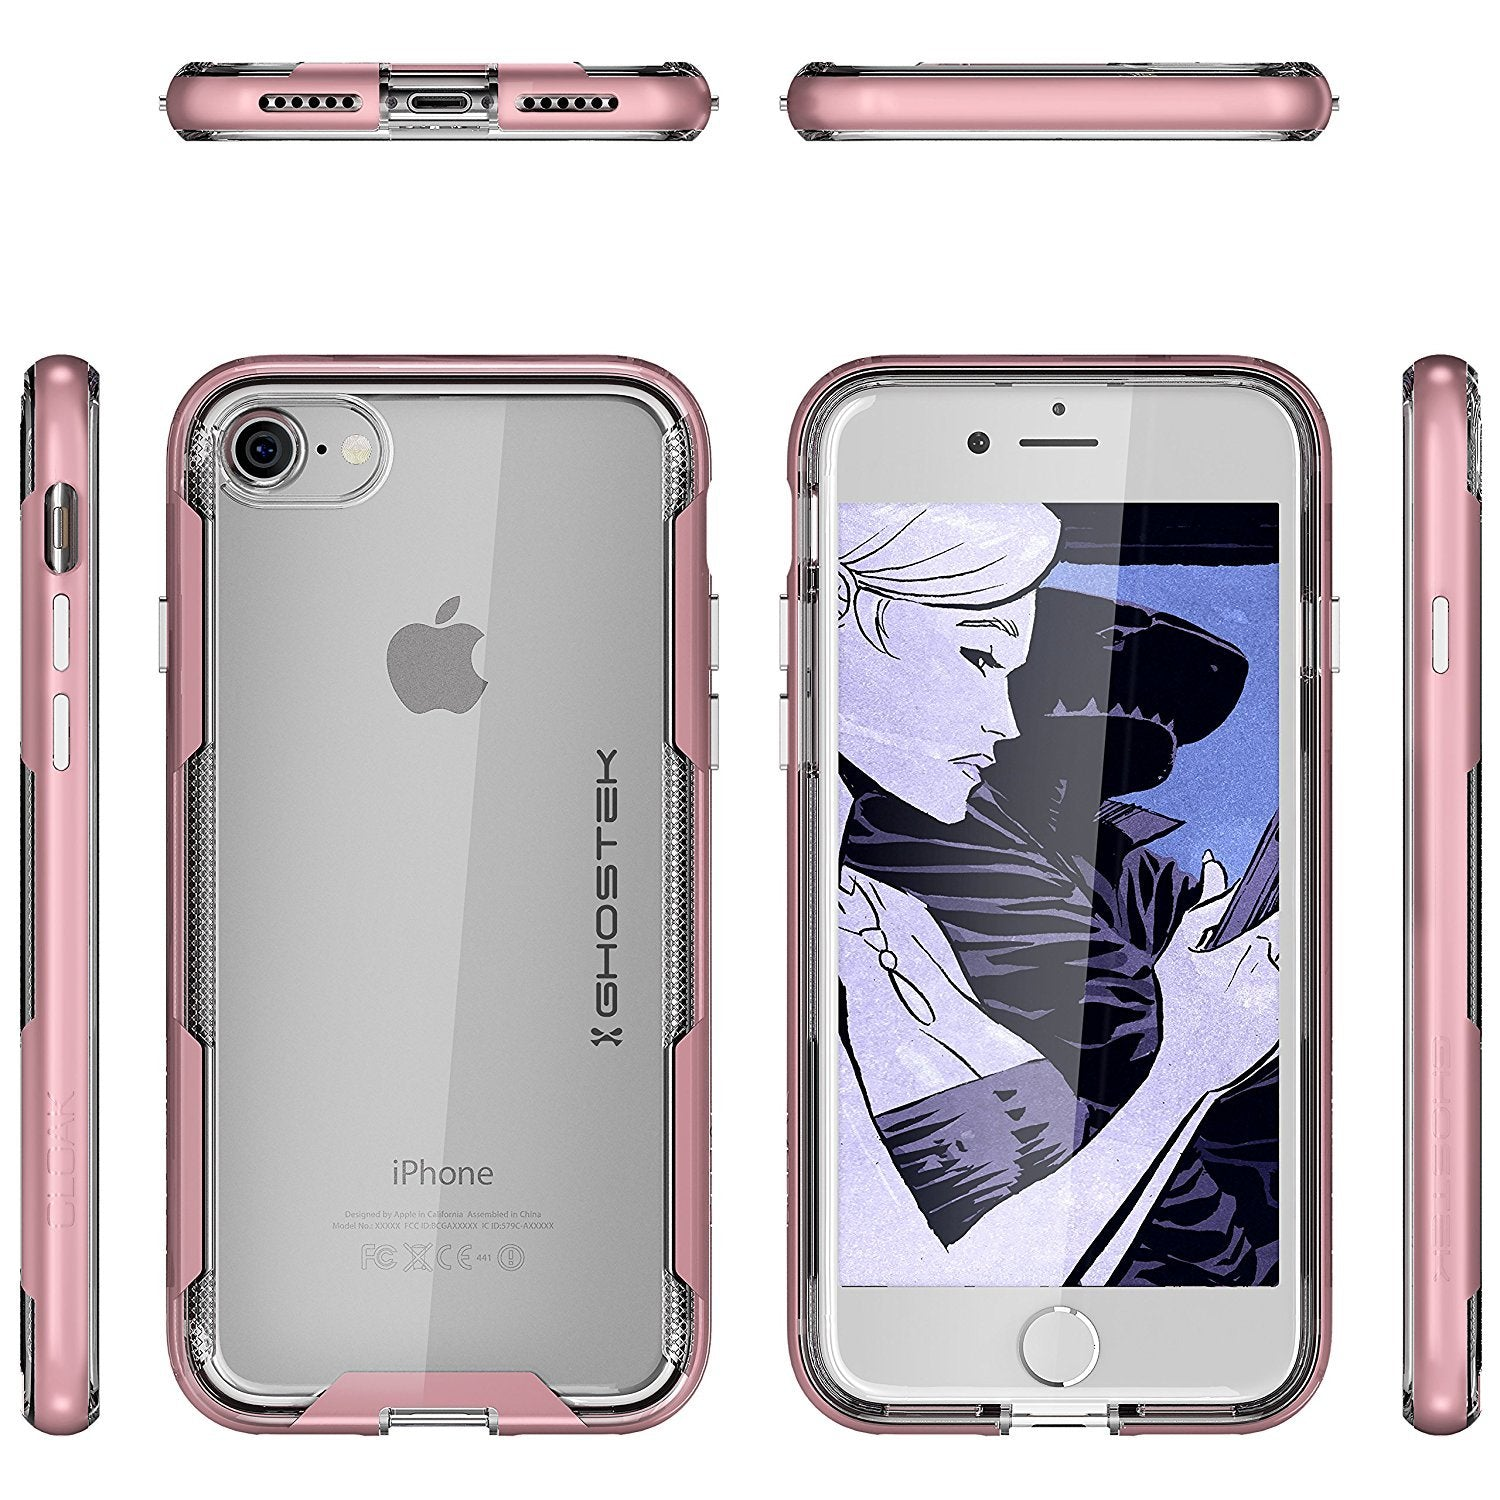 iPhone 7 Case, Ghostek Cloak 3 Series Case for iPhone 7 Case Clear Protective Case [Rose Pink]